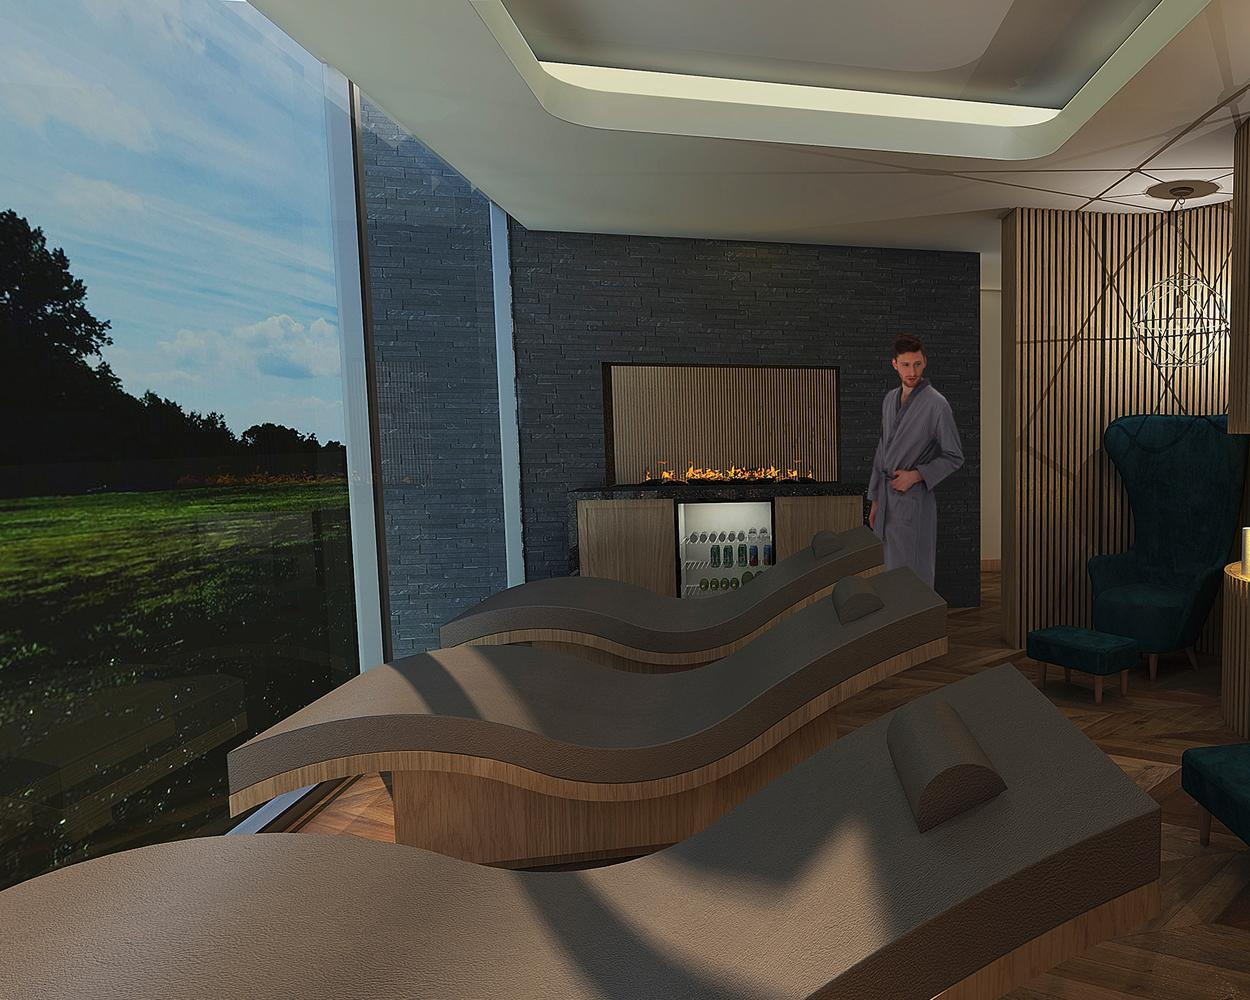 The spa is being created by spa consultant Nicki Kurran, alongside HB Architects, Pave Always Ltd Building Contractors, Barr & Wray Interior Desig